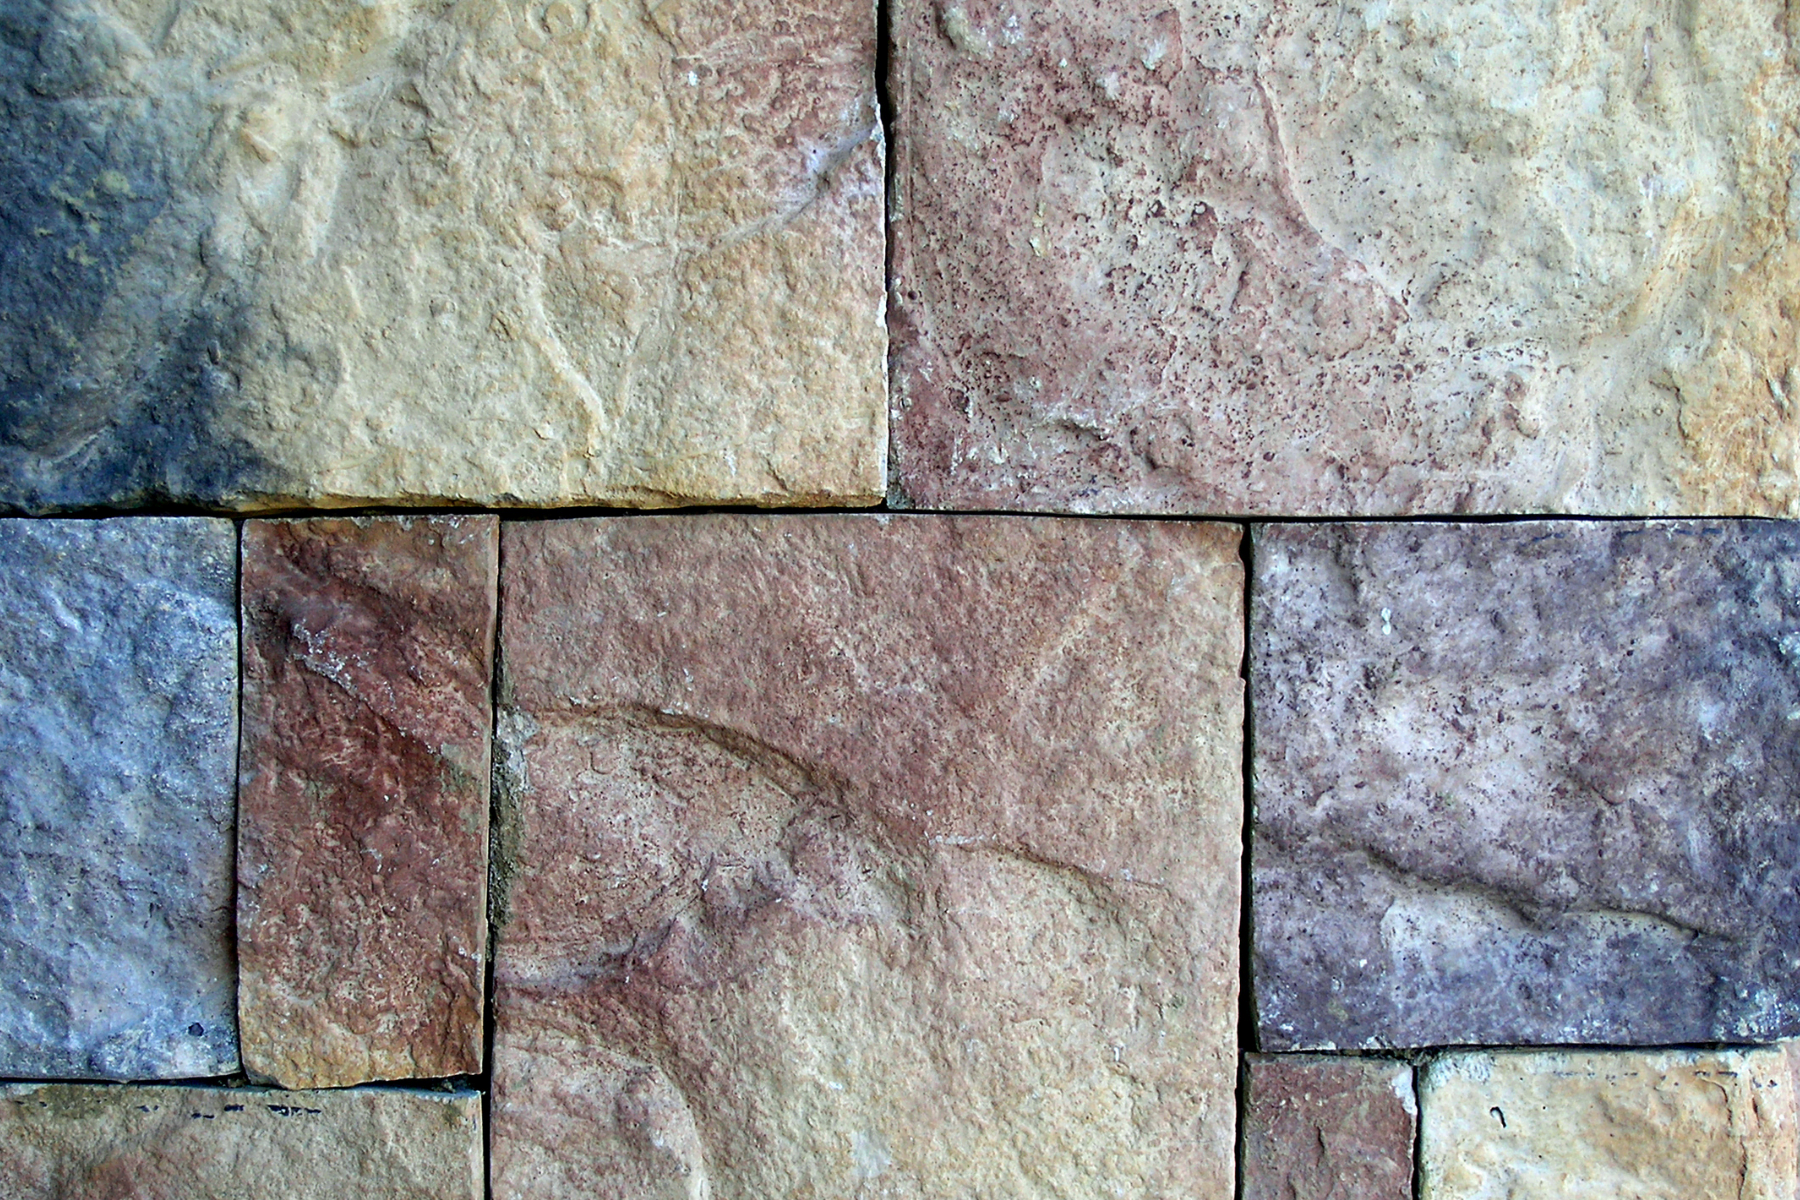 Many homeowners use flagstone when landscaping with rock